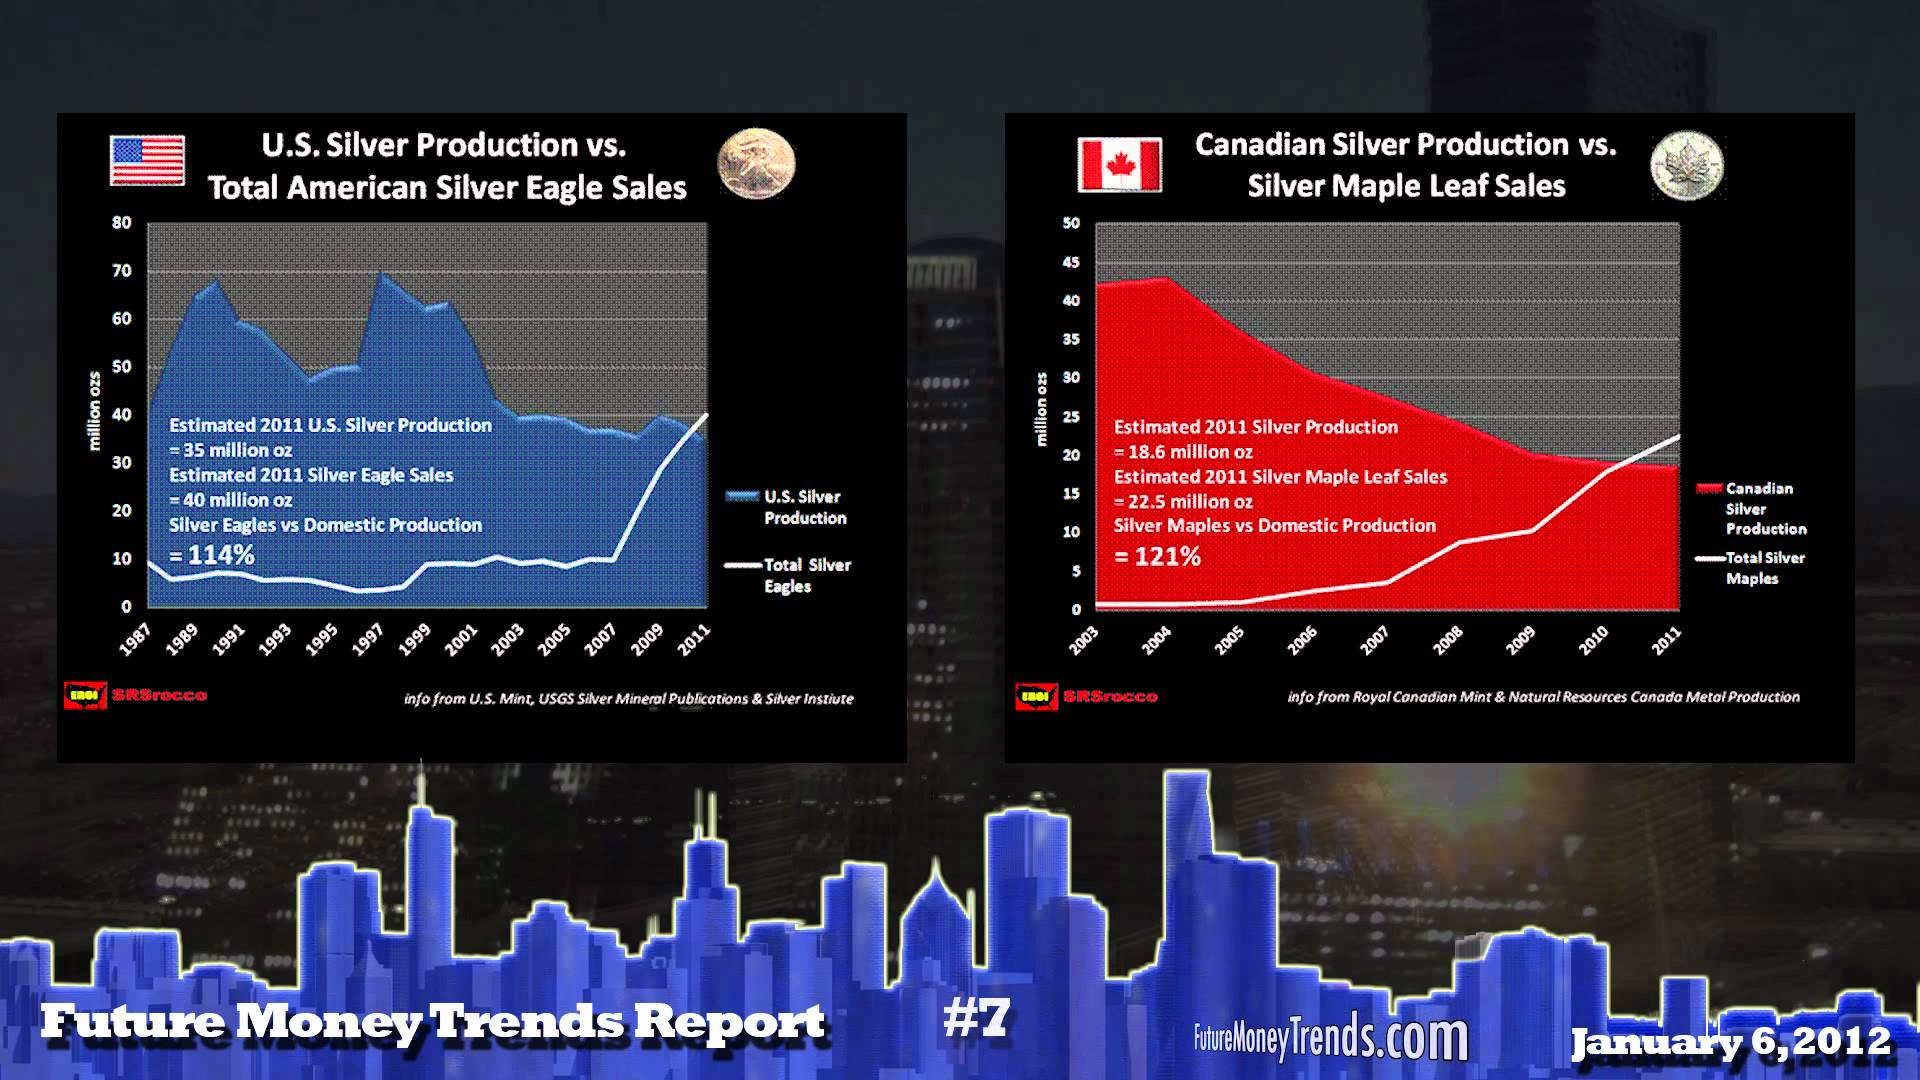 Future Money Trends Report Jan 6 2012 – 2012 PREDICTIONS